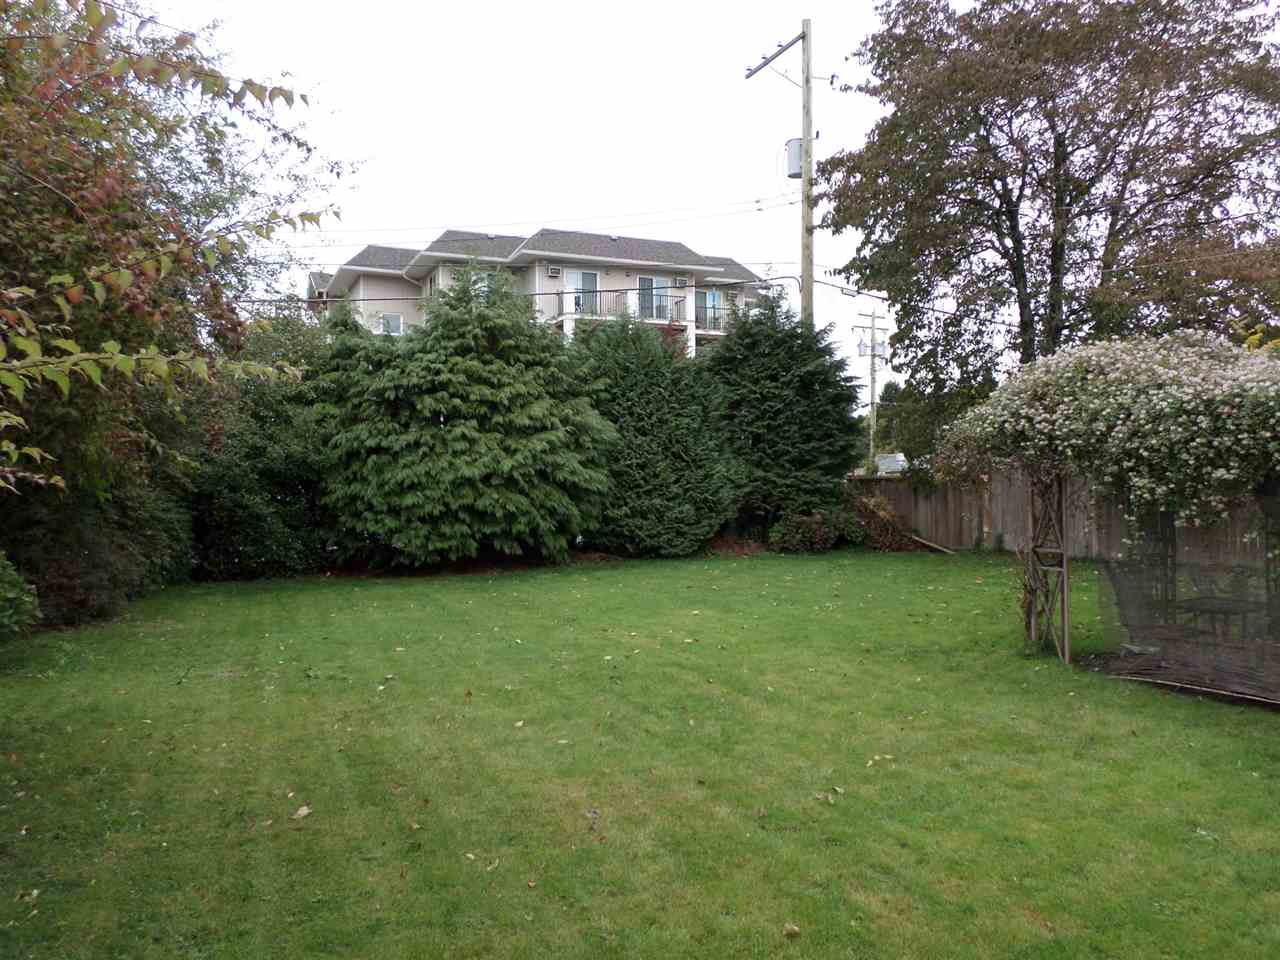 Photo 2: 33559 CANNON Avenue in Abbotsford: Central Abbotsford House for sale : MLS® # R2006995